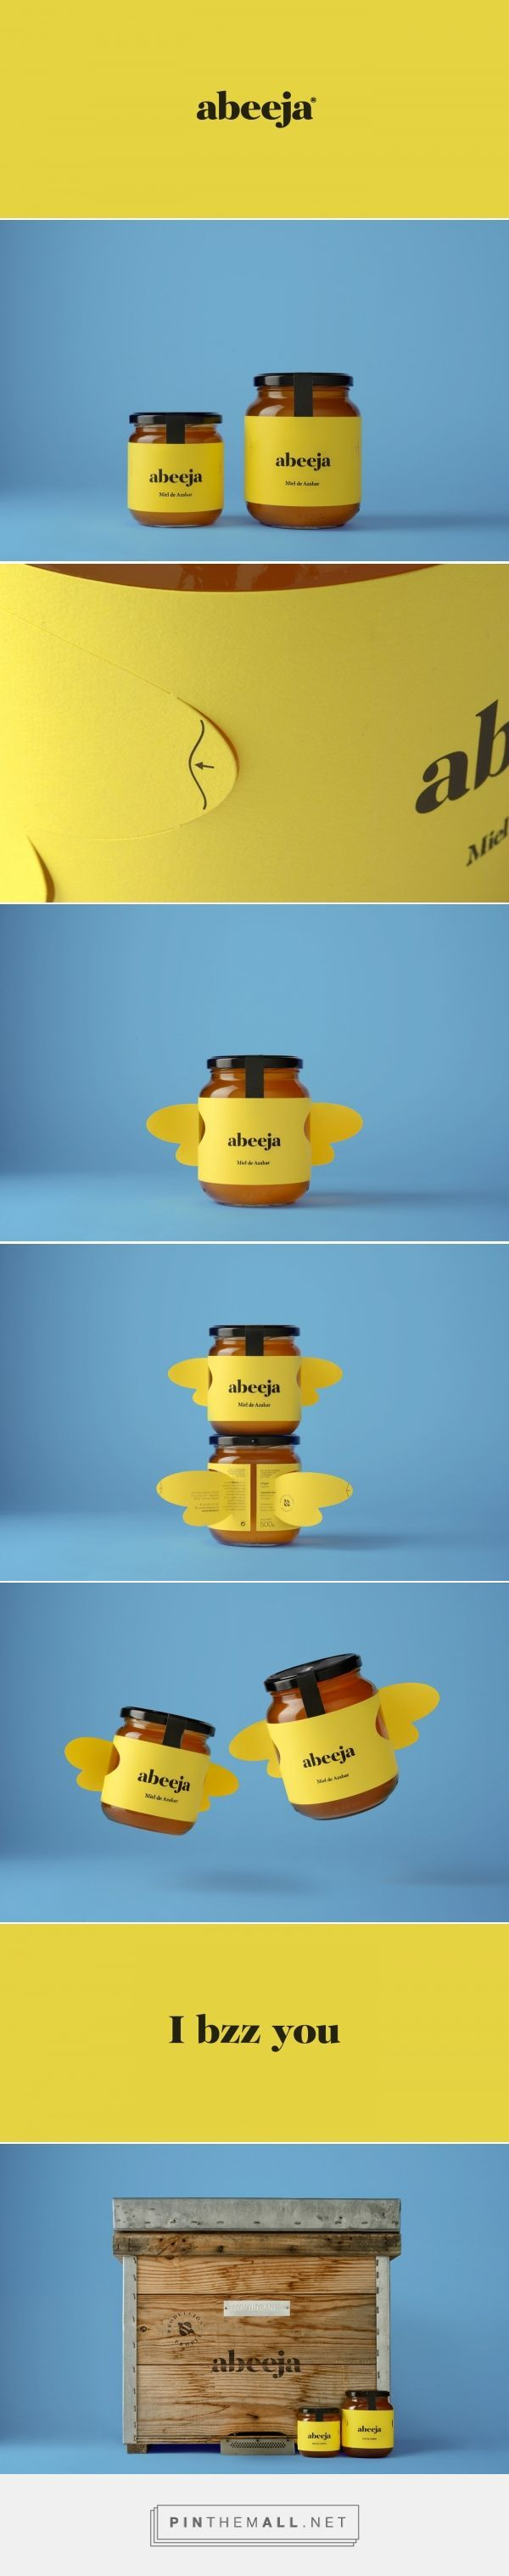 Sky is the limit! Abeeja honey packaging concept by Andrés Guerrero - www.packagingofth...